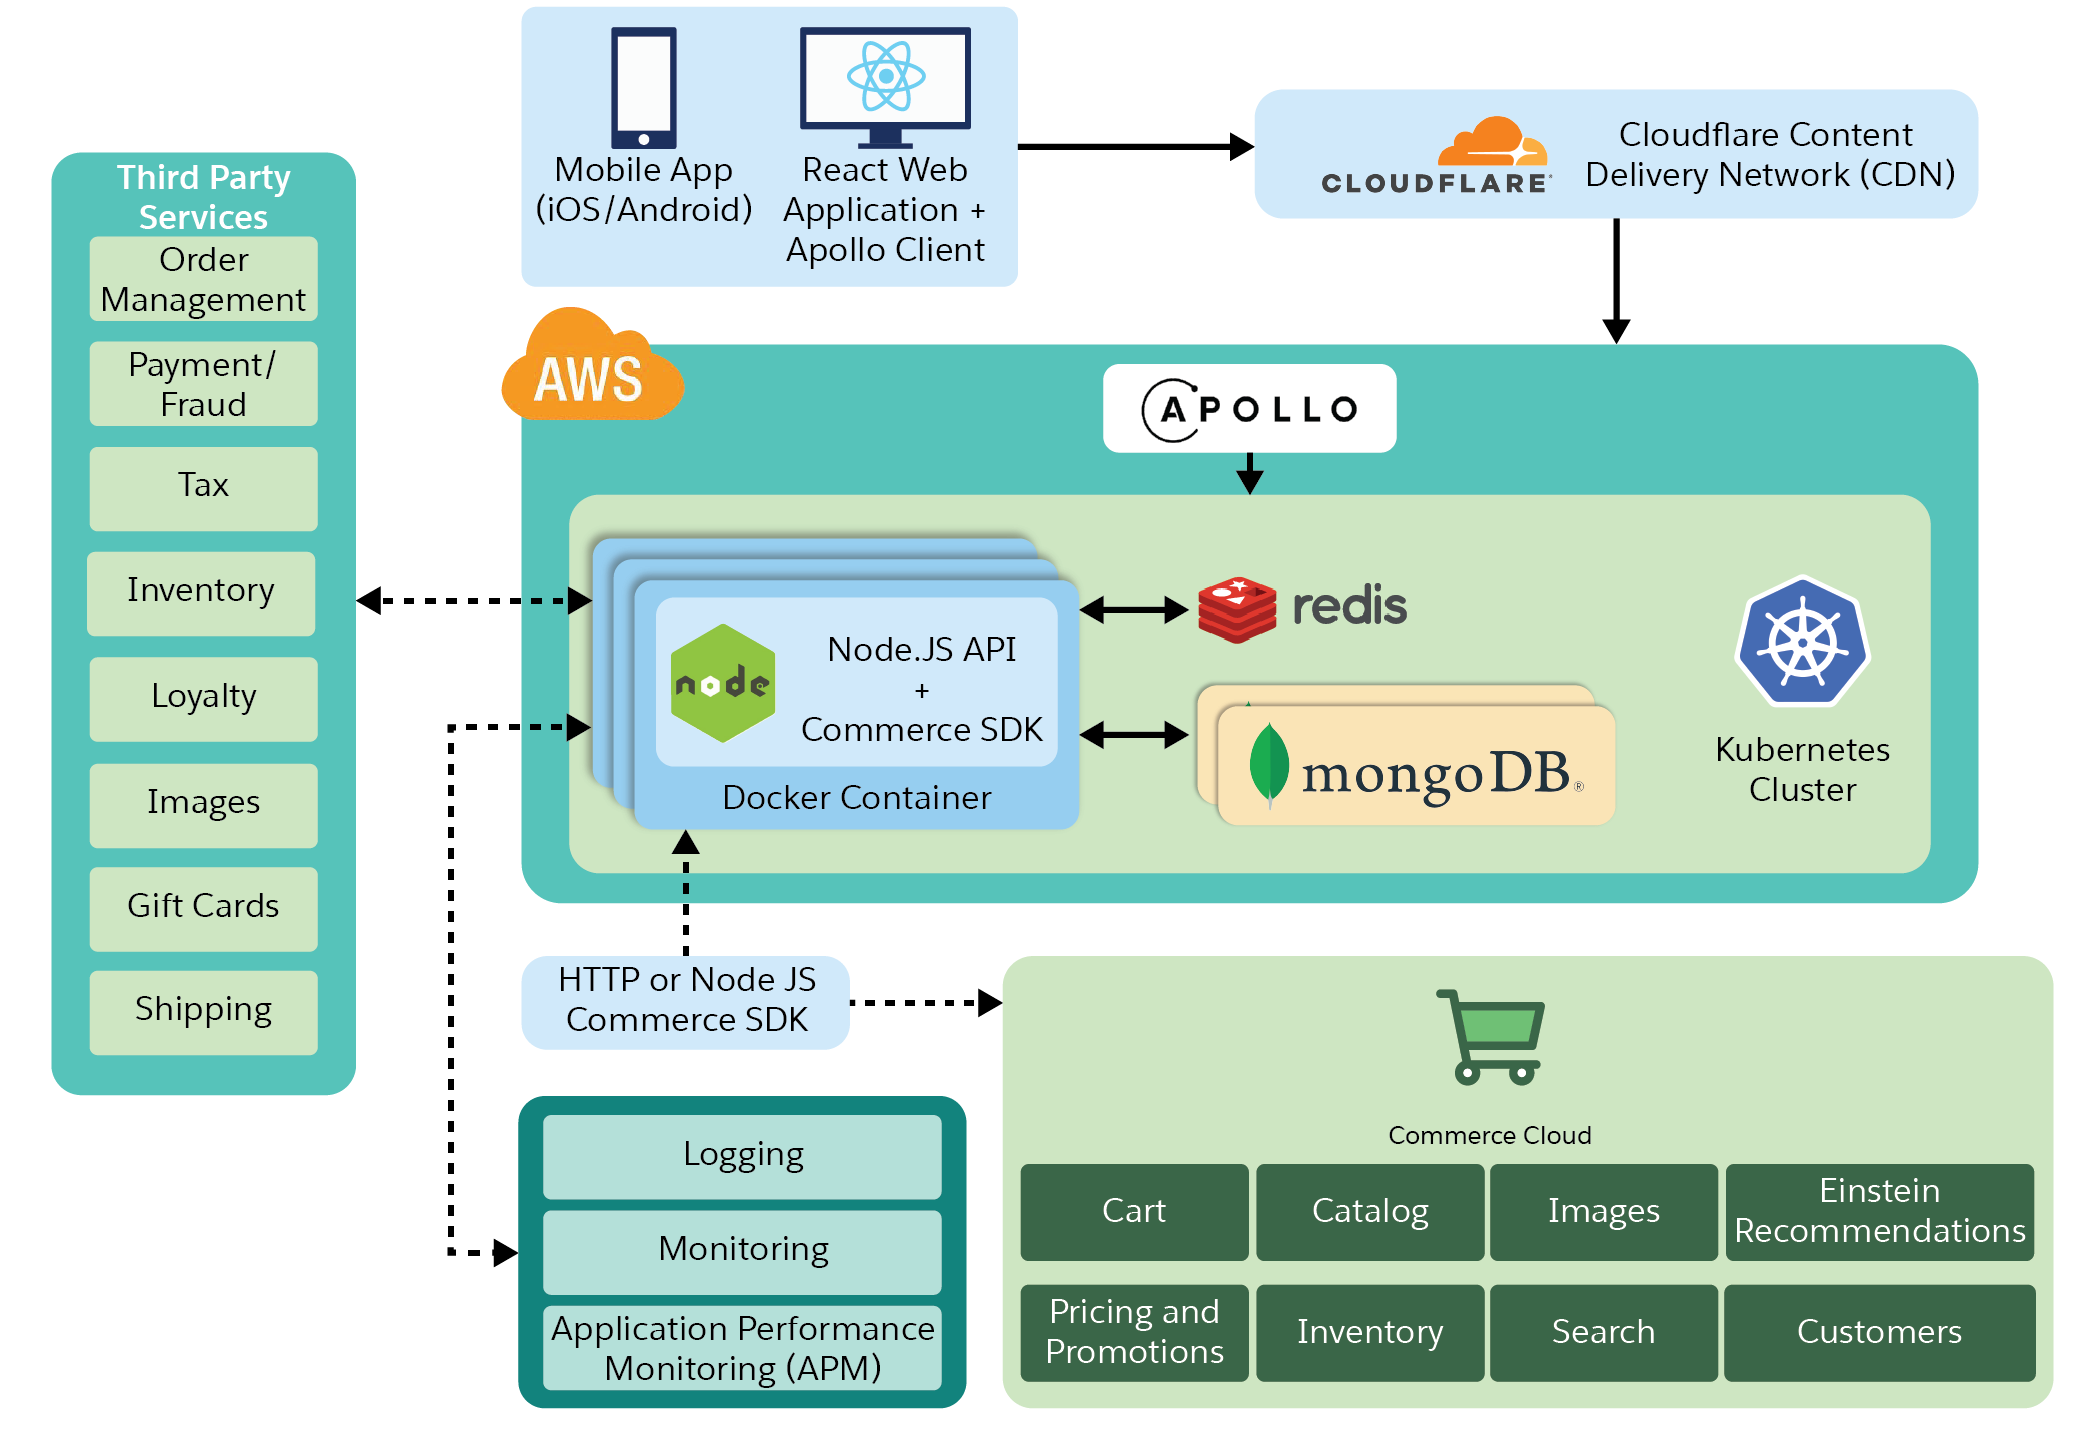 A sample architecture includes components such as the CloudFlare CDN, Amazon API Gateway, Apollo, B2C Commerce, and third-party services.